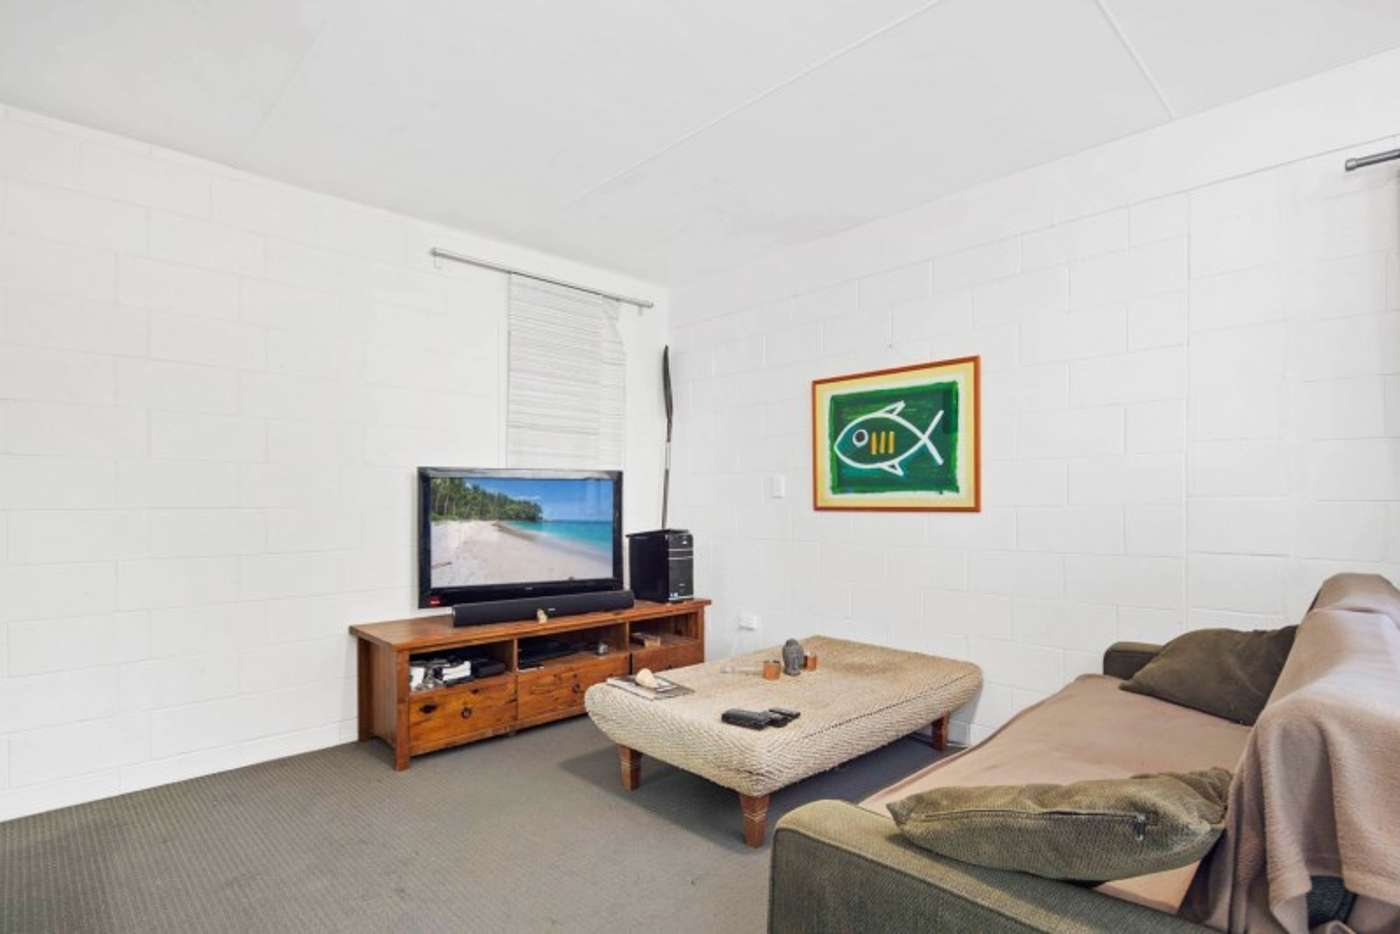 Sixth view of Homely house listing, 134 Yandina Coolum Road, Coolum Beach QLD 4573